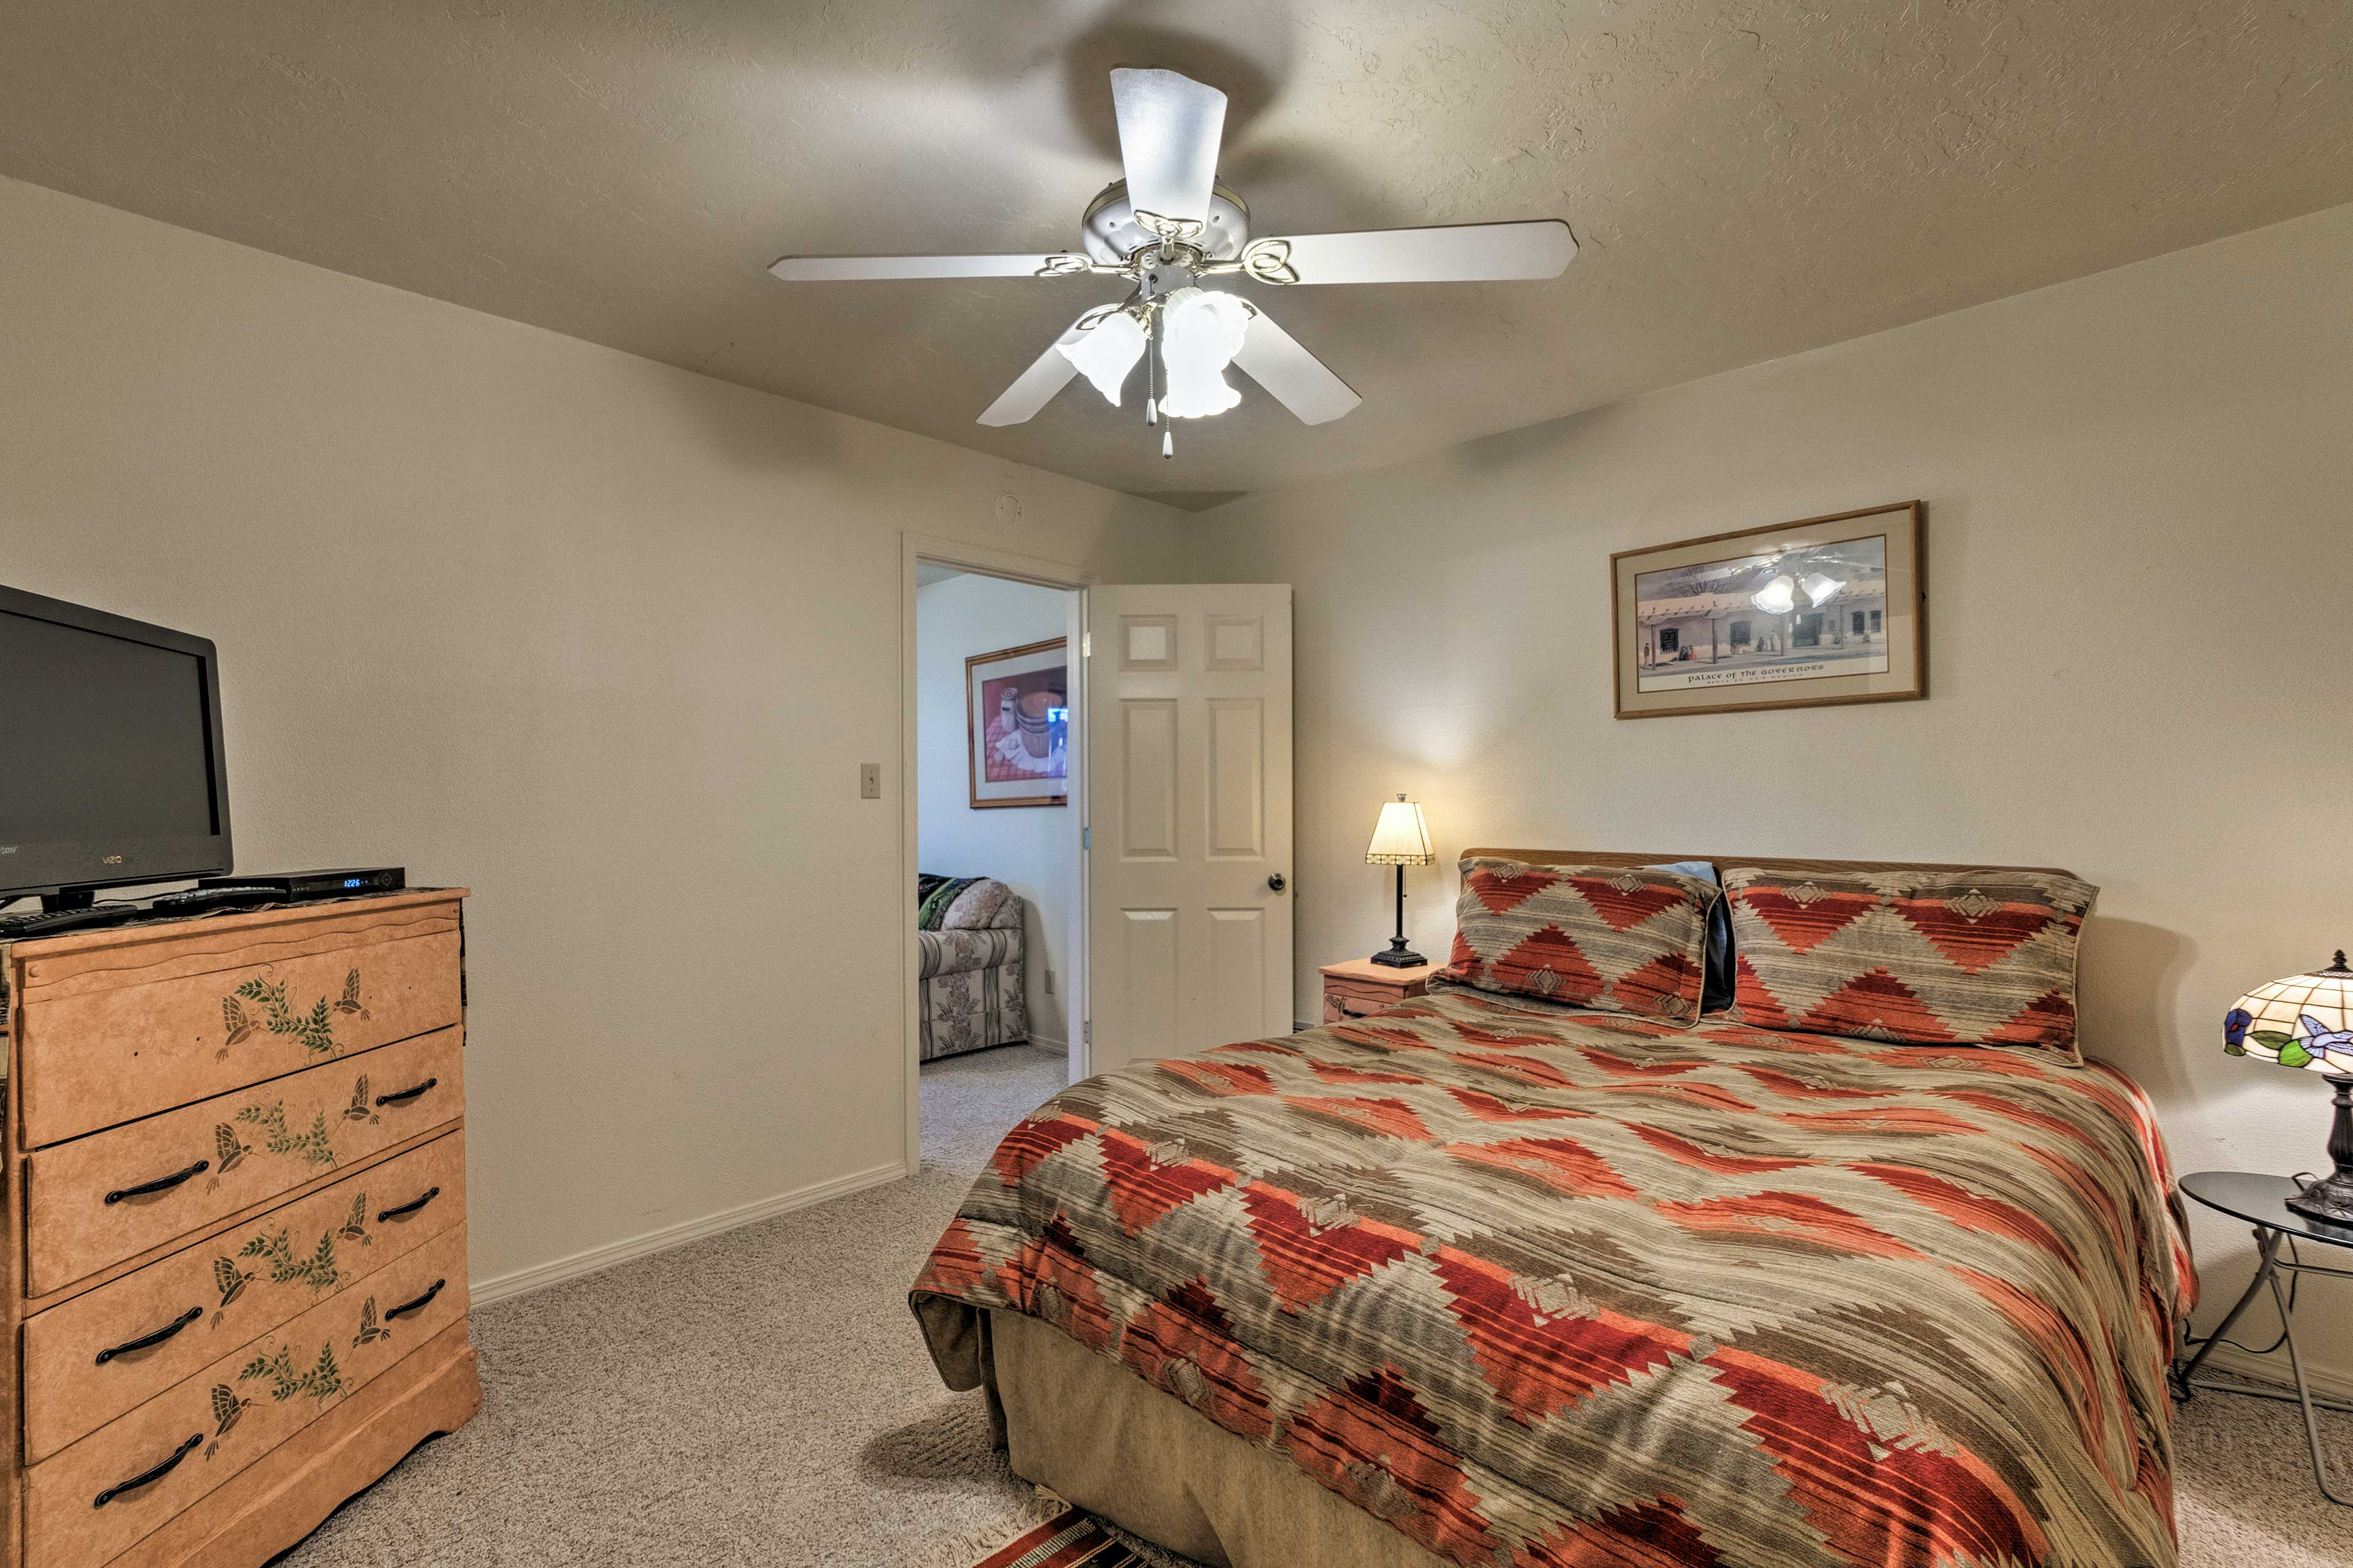 A private suite downstairs features a queen bed in the bedroom.